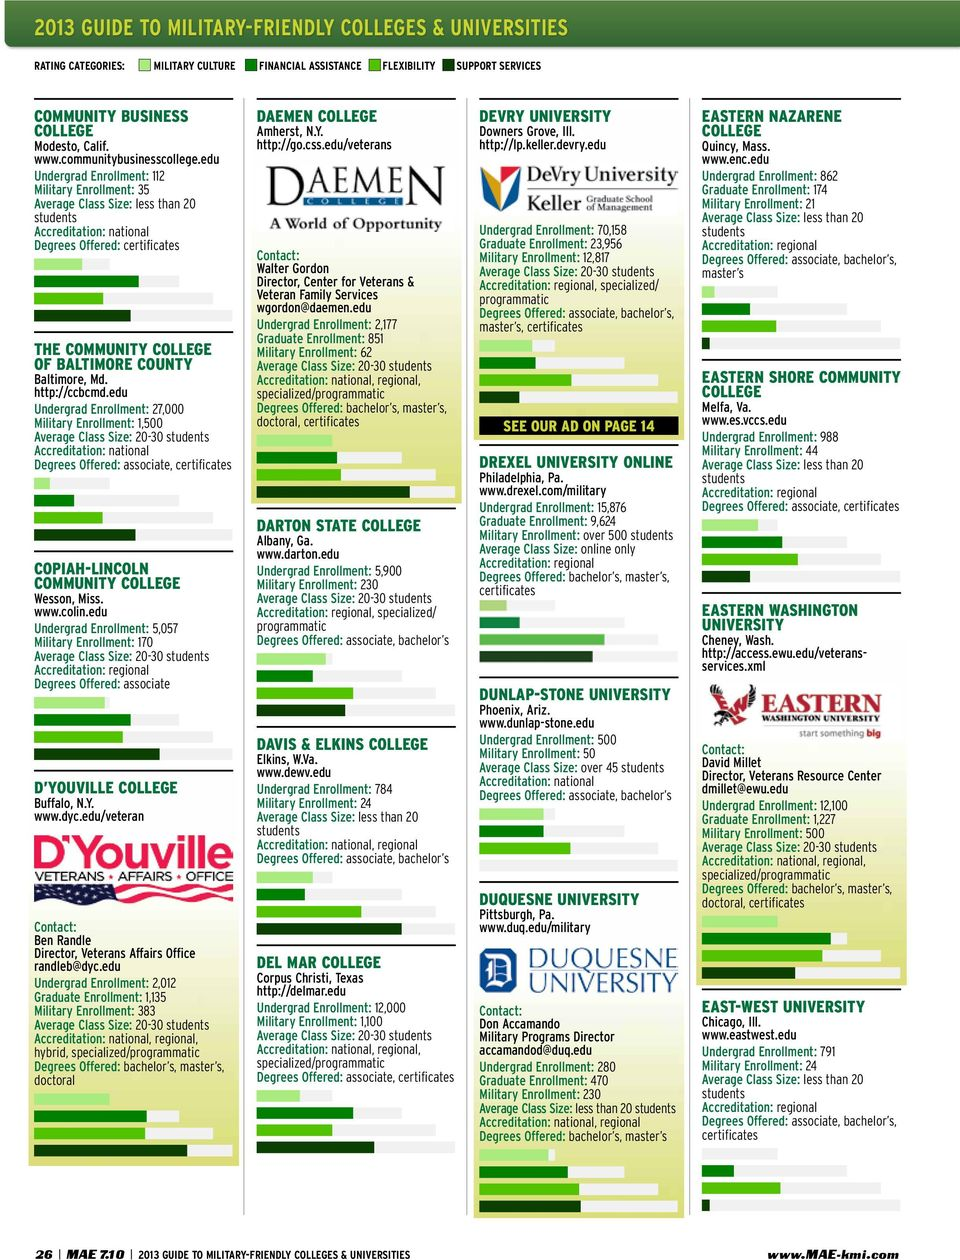 edu Undergrad Enrollment: 5,057 Military Enrollment: 170 Degrees Offered: associate D Youville Buffalo, N.Y. www.dyc.edu/veteran Ben Randle Director, Veterans Affairs Office randleb@dyc.